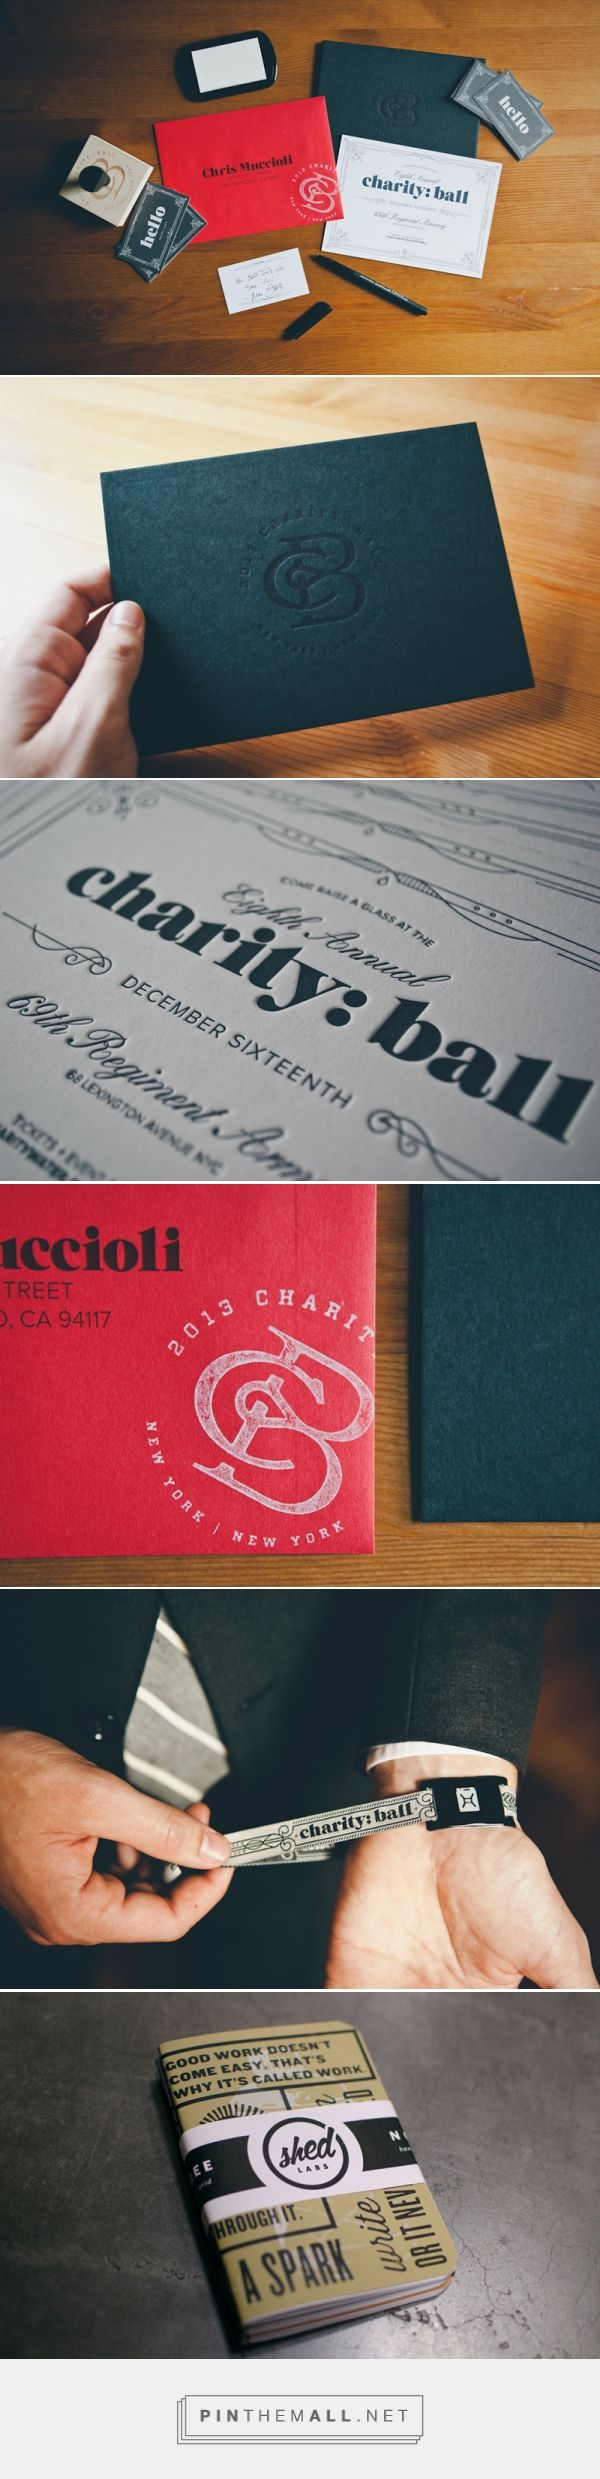 Charity: Ball Invitations by Mike Smith | Graphic Design—Branding ...